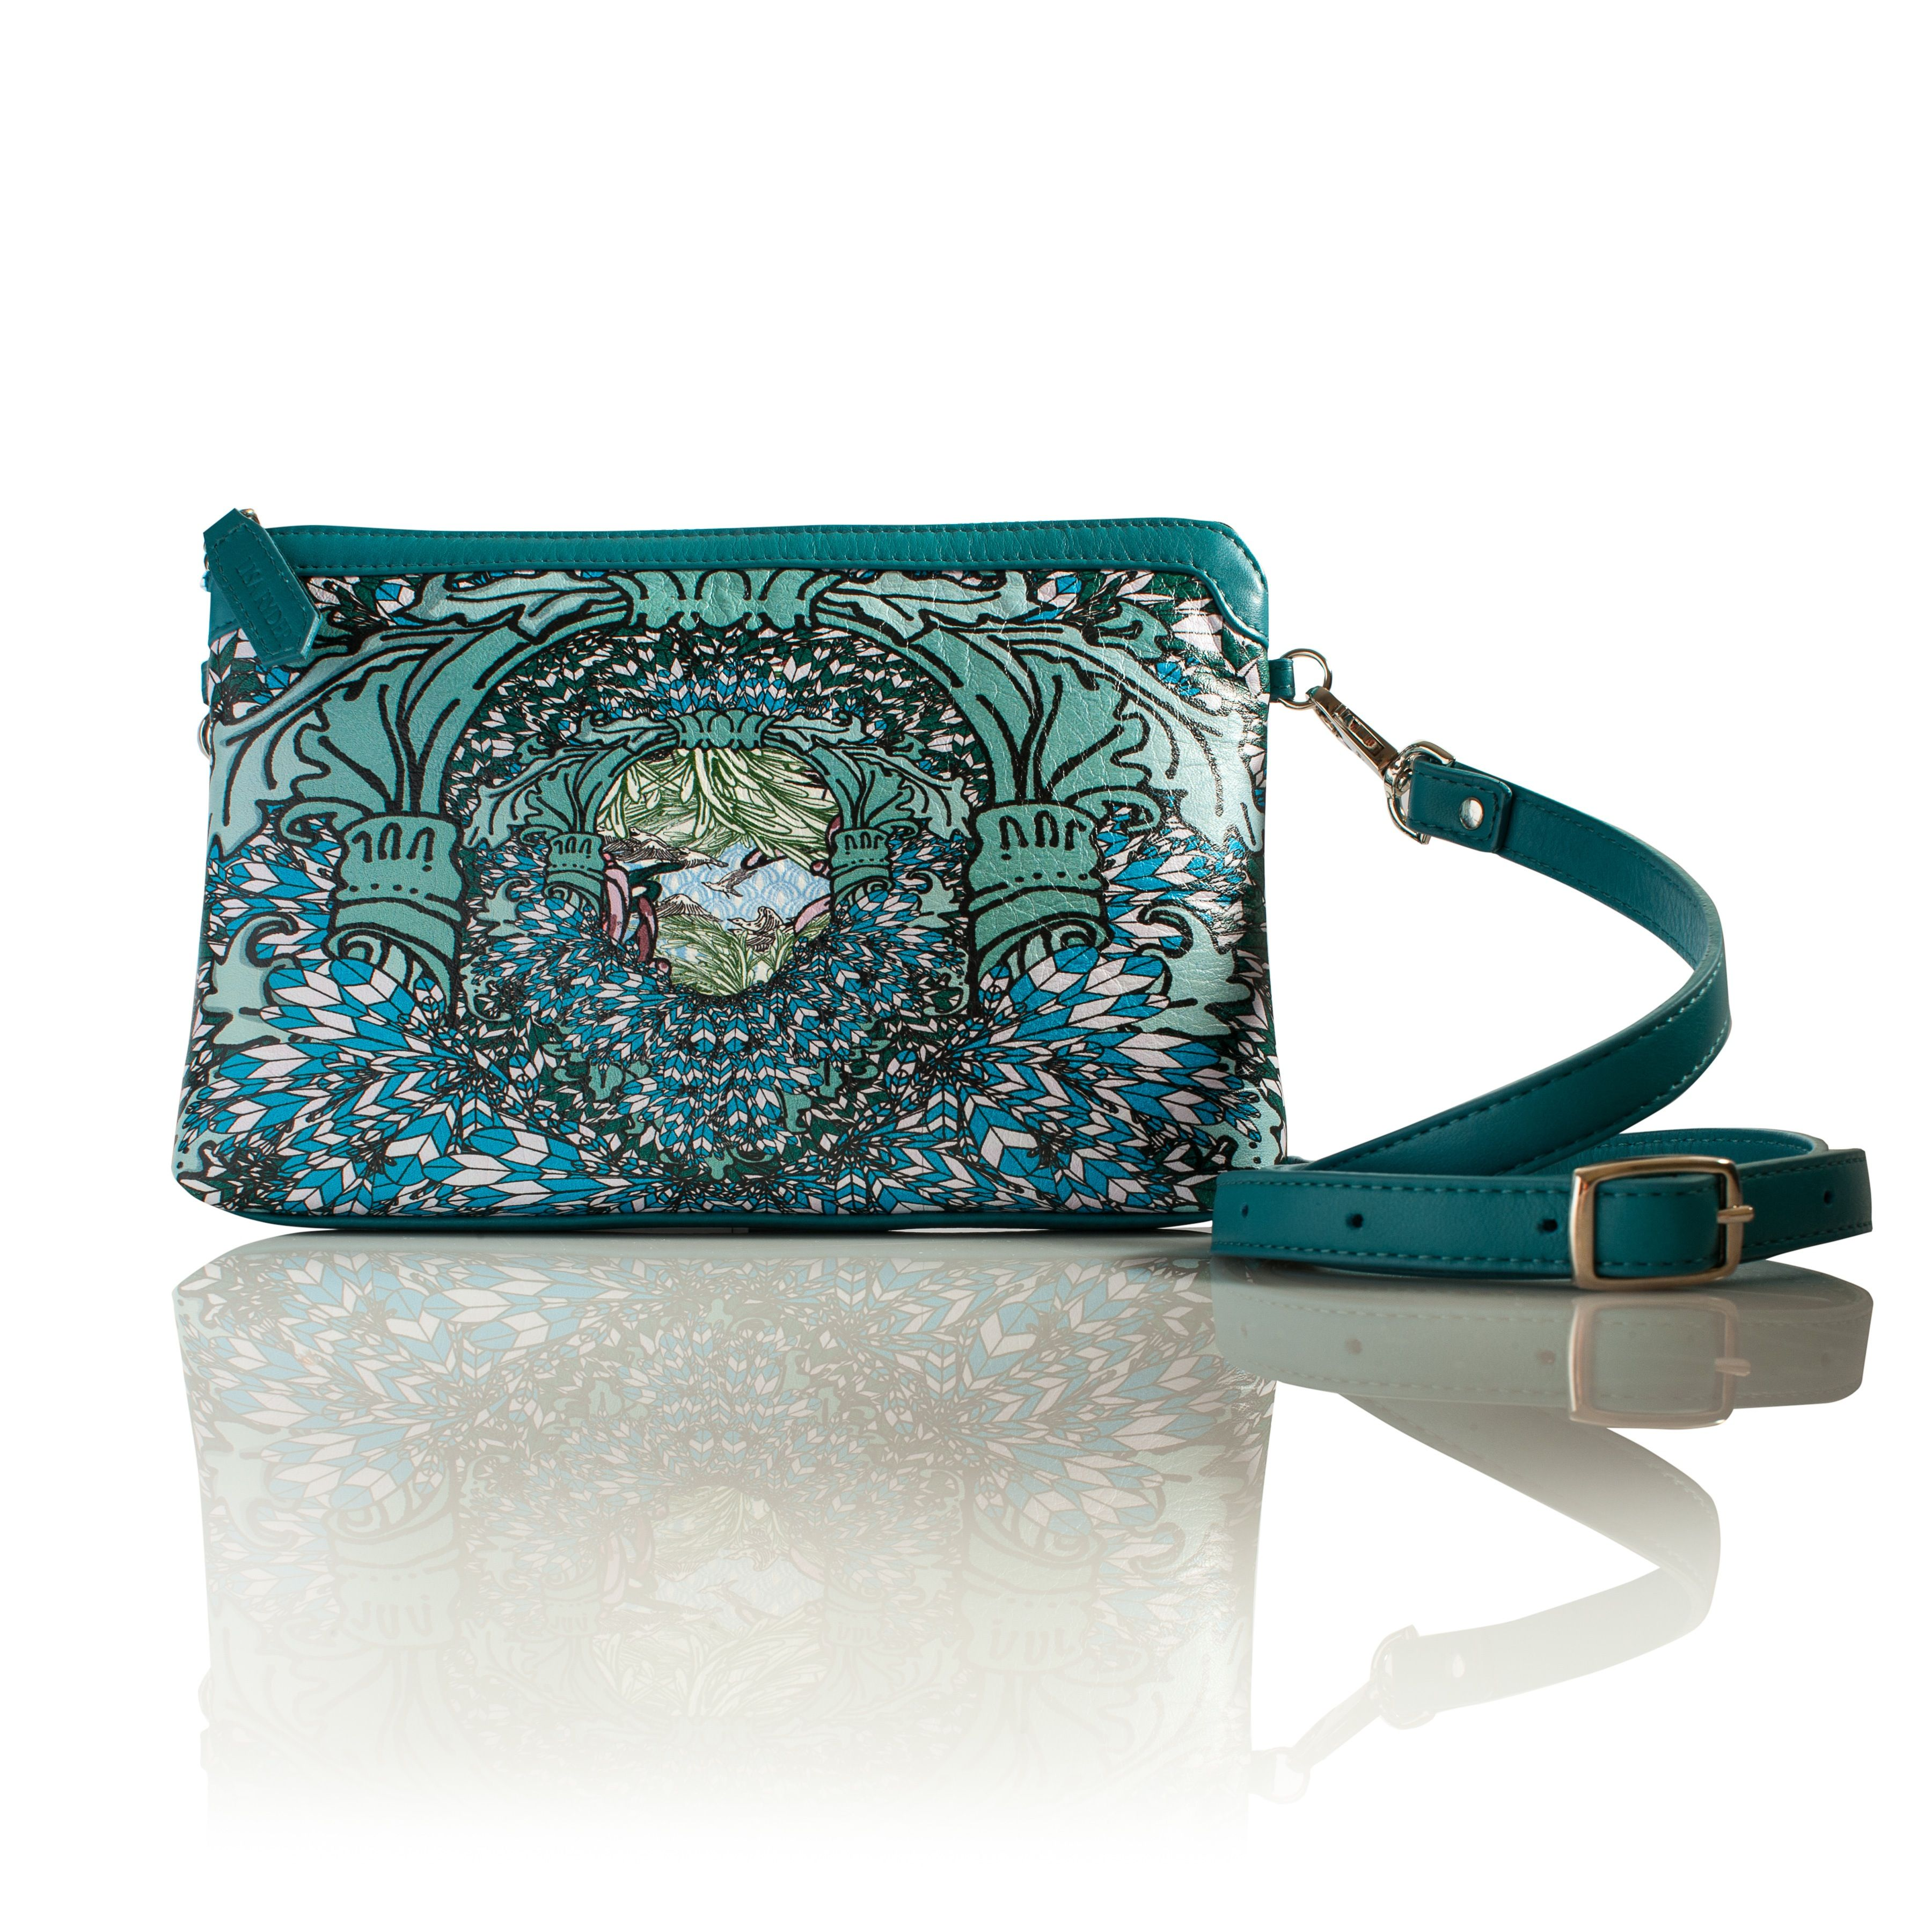 Light As A Feather (Rectangle) Cross-Body leather handbag  This print is an explosion of printed feathers. Vivid greens, turquoise blue and pastels are this bags statement colours. This is the perfect print to make a statement.    INFORMATION  Rectangular soft shoulder bag. All leather, with leather trim in soft bottle green calf skin leather. Detachable and adjustable cross strap for easy wear.  SIZE Height: 16cmcm  Width: 26cm  Strap: 114cm  Depth 3cm  www.lisaryderdesigns.ie